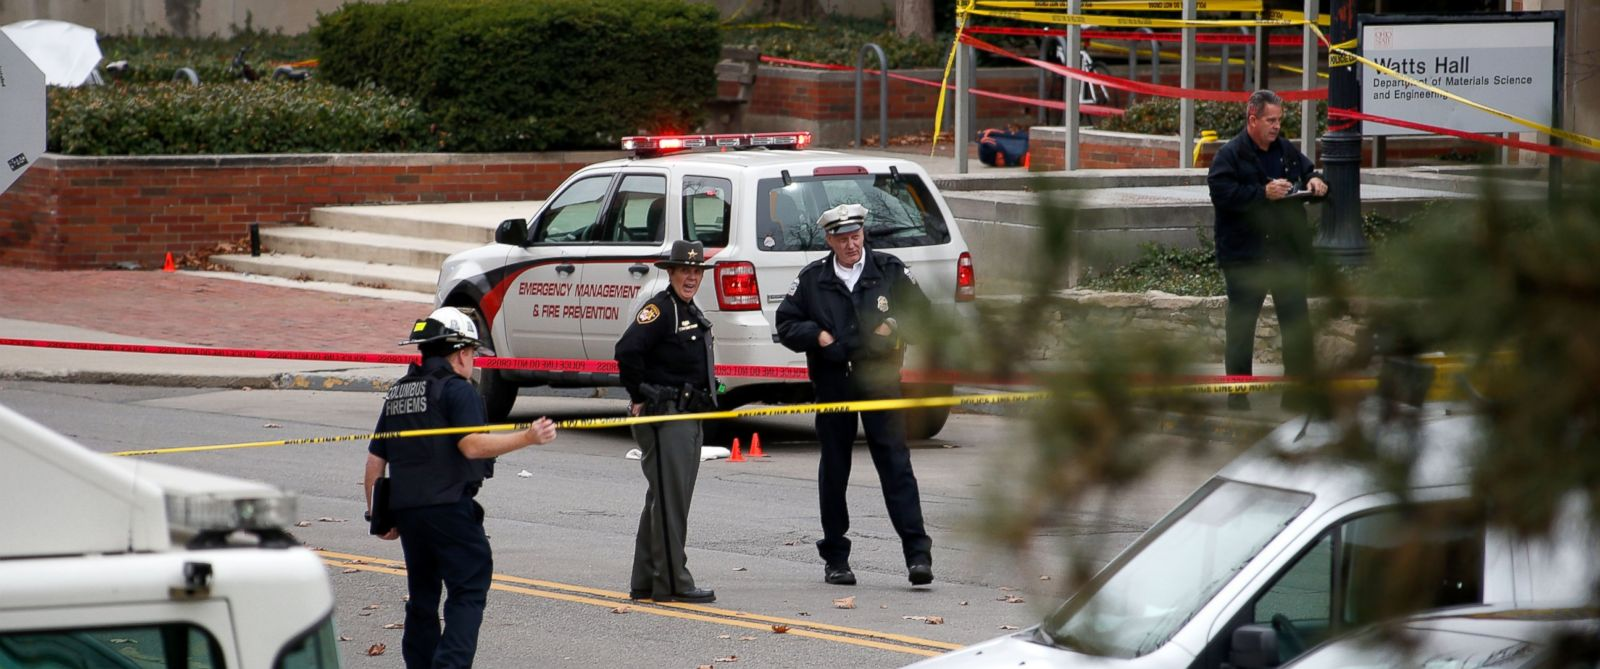 PHOTO: Police keep the roads closed around Watts Hall following an attack on the campus of the Ohio State University on Nov. 28, 2016 in Columbus, Ohio.